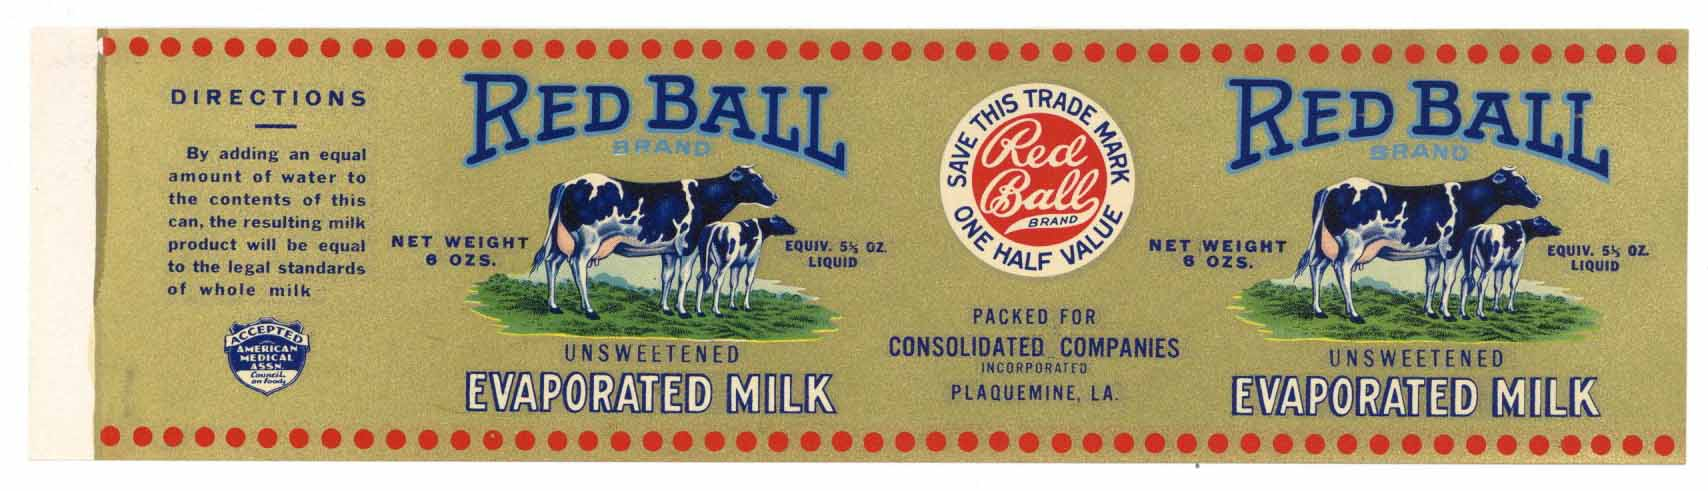 Red Ball Brand Vintage Plaquemine, Louisiana Milk Can Label